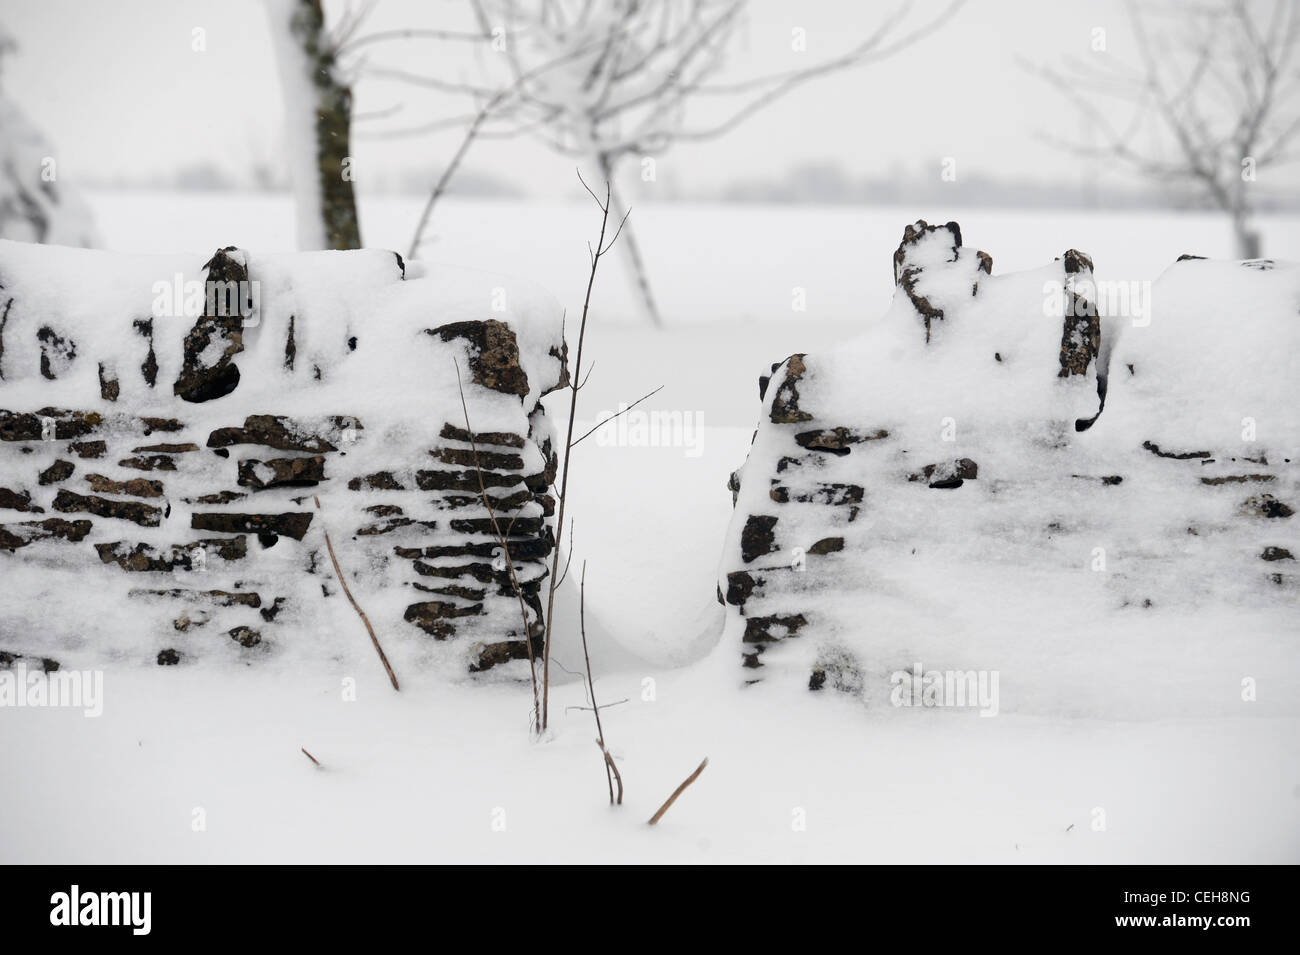 A gap in a cotswold stone wall in snowy conditions UK - Stock Image